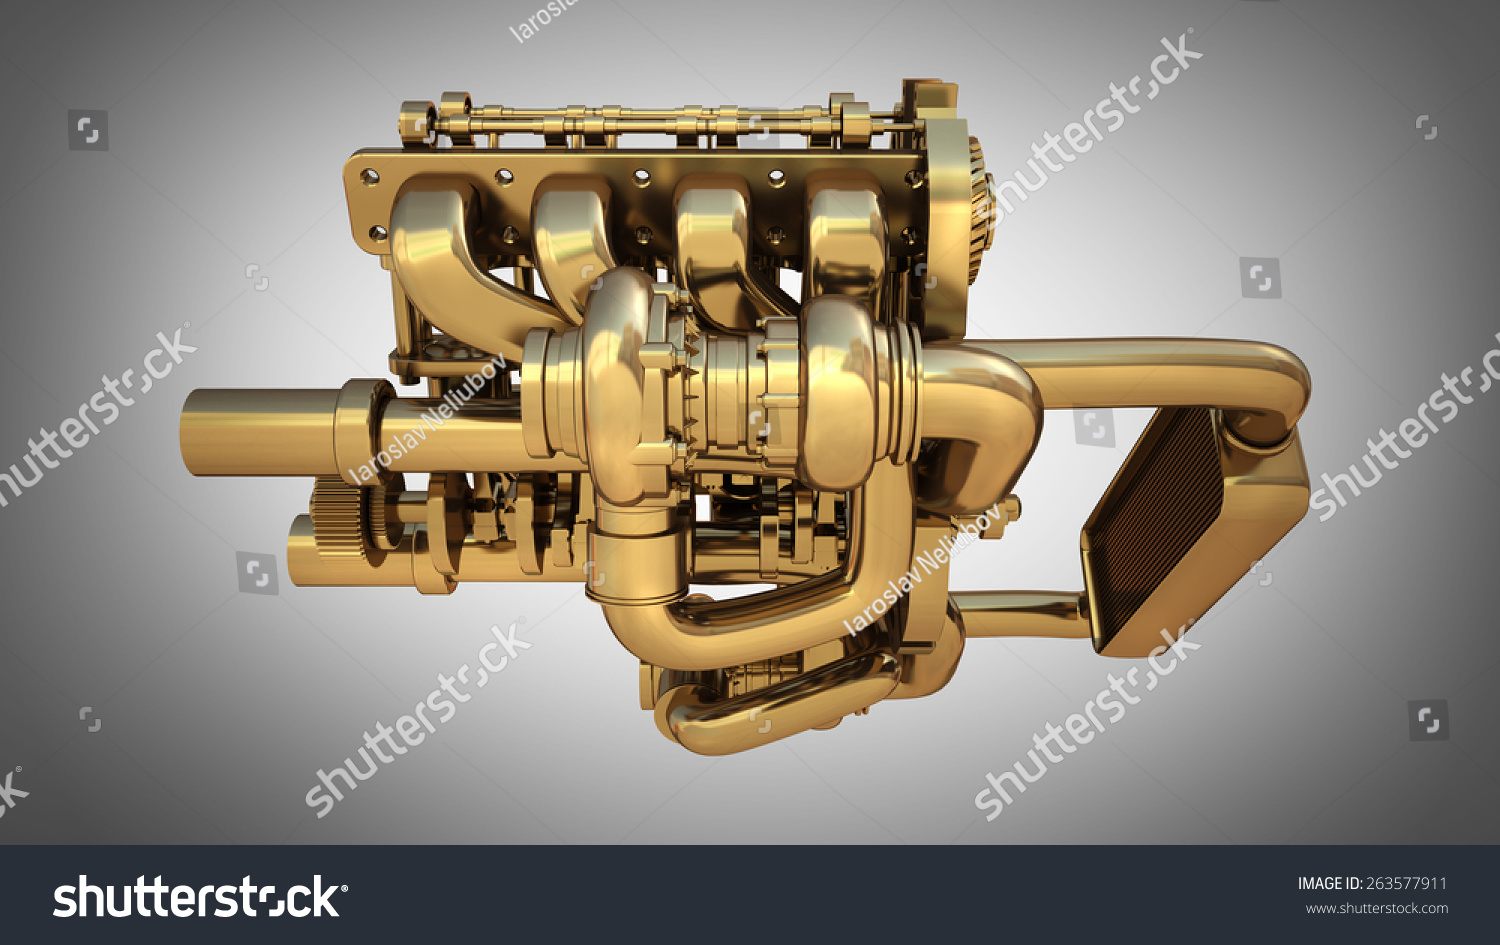 Tenor Saxophone Exploded View Drawing Isolated On Blue Background Diagram Engine Related Keywords Suggestions Of Key Action Instrument Ez Canvas